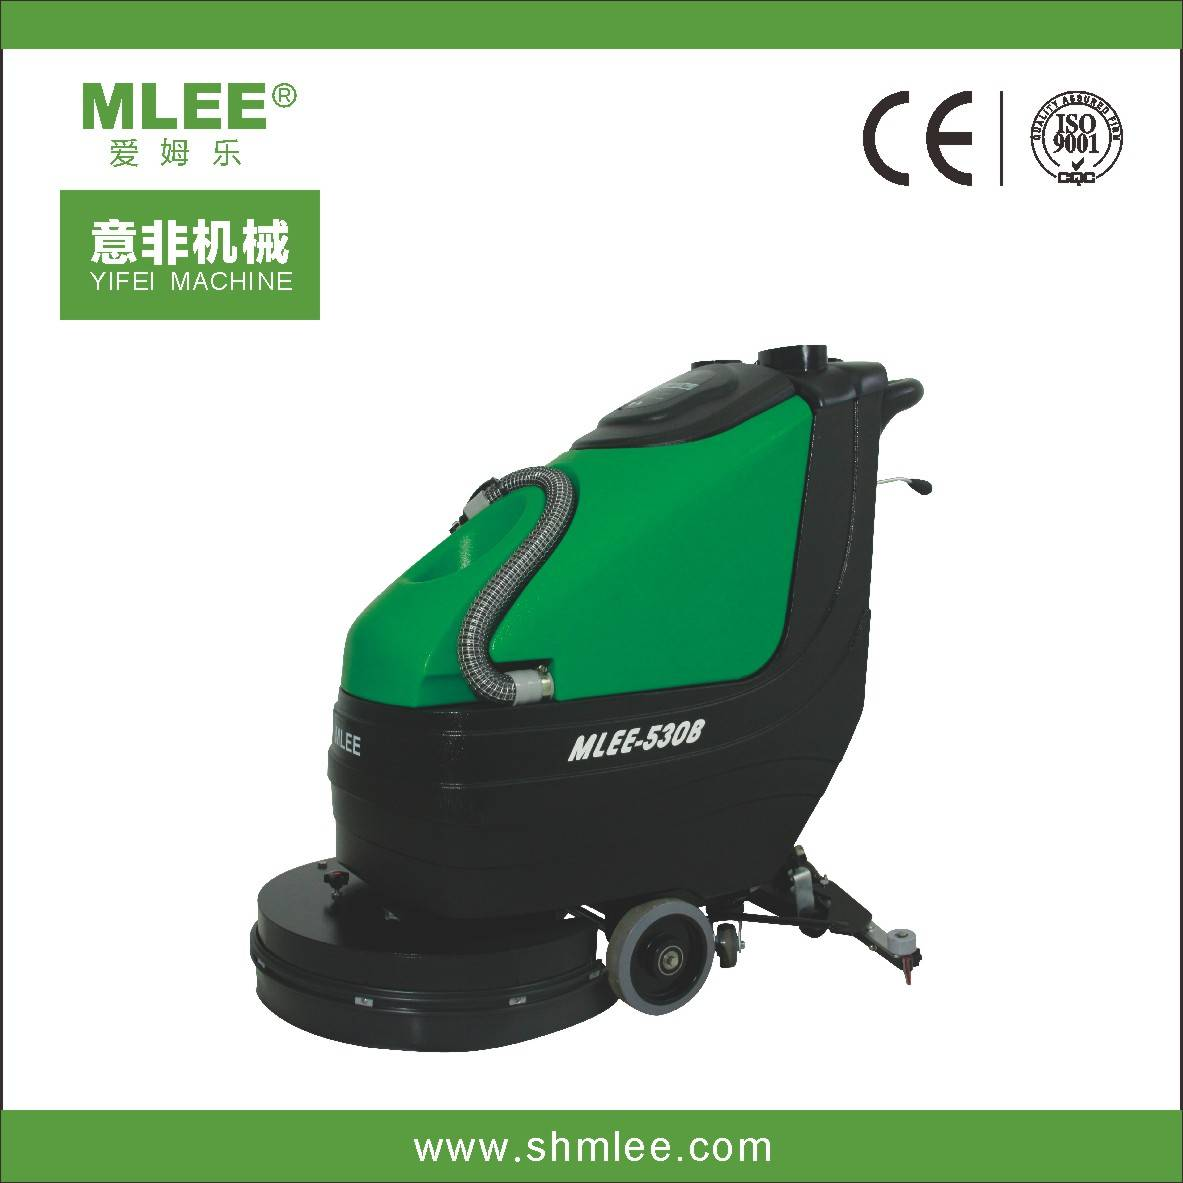 MLEE530B chinese Auto floor scrubber dryer electric floor sweeper